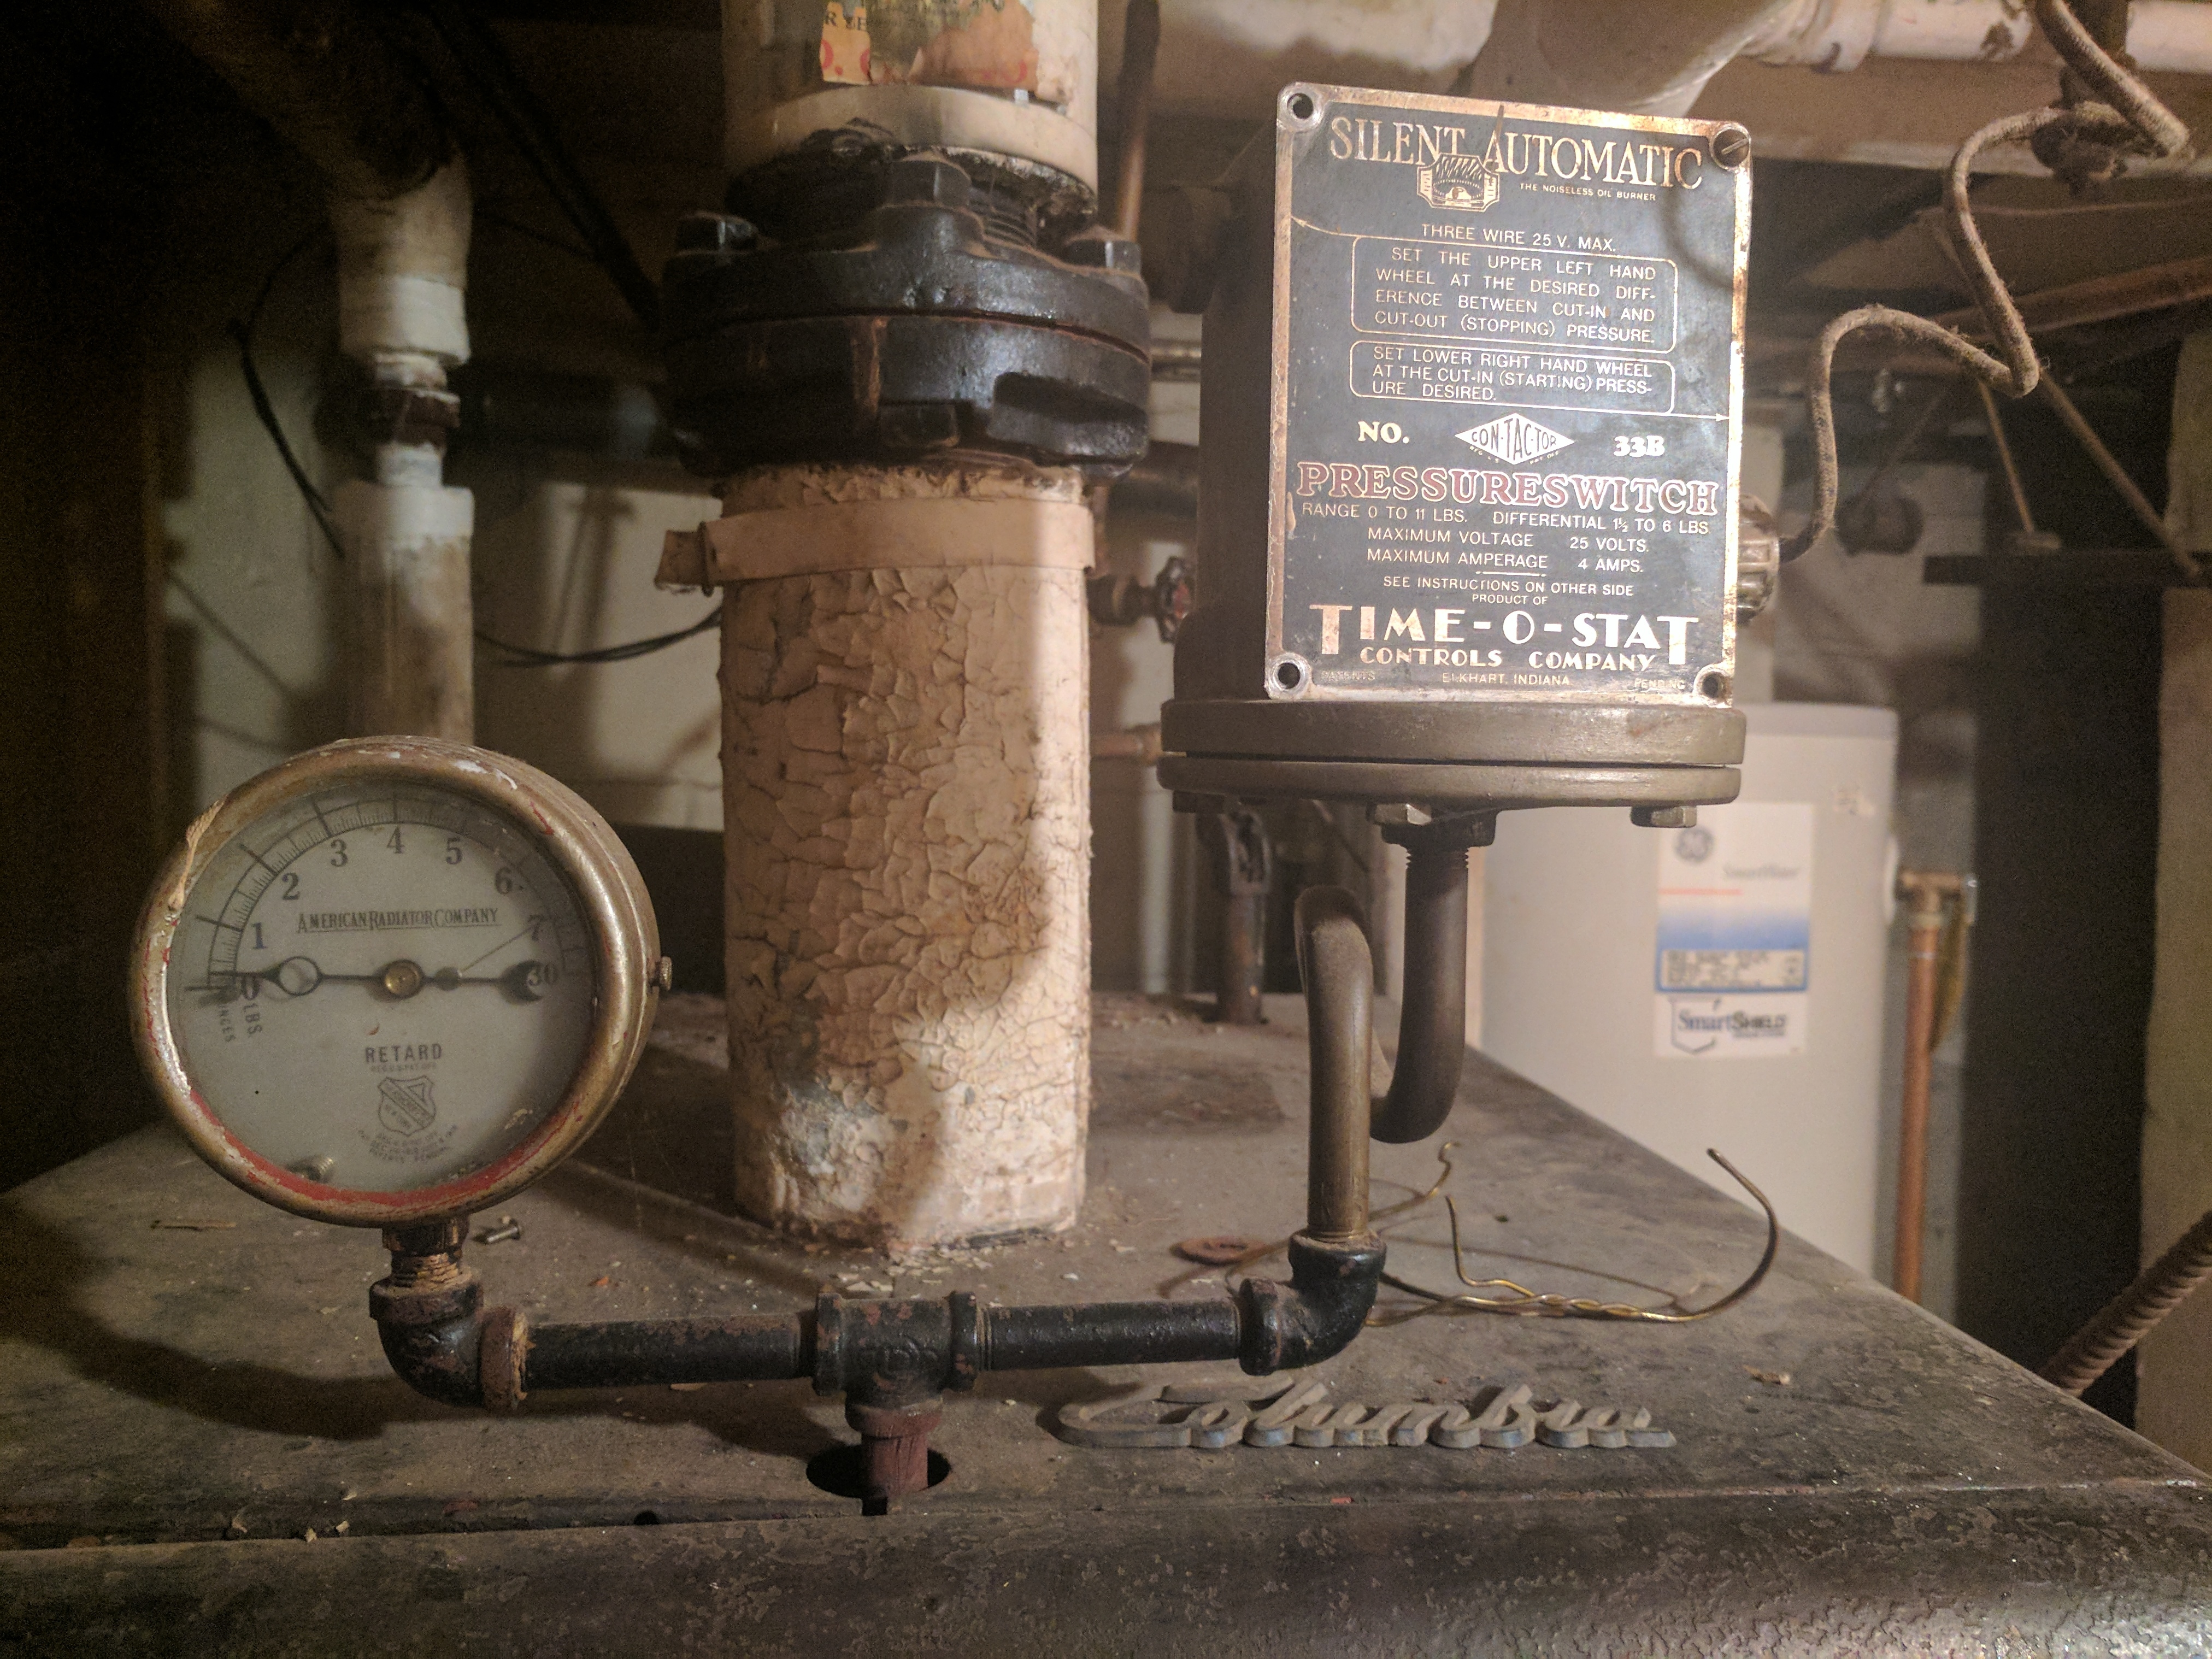 Tips for 1920s American Radiator steam boiler? — Heating Help: The Wall